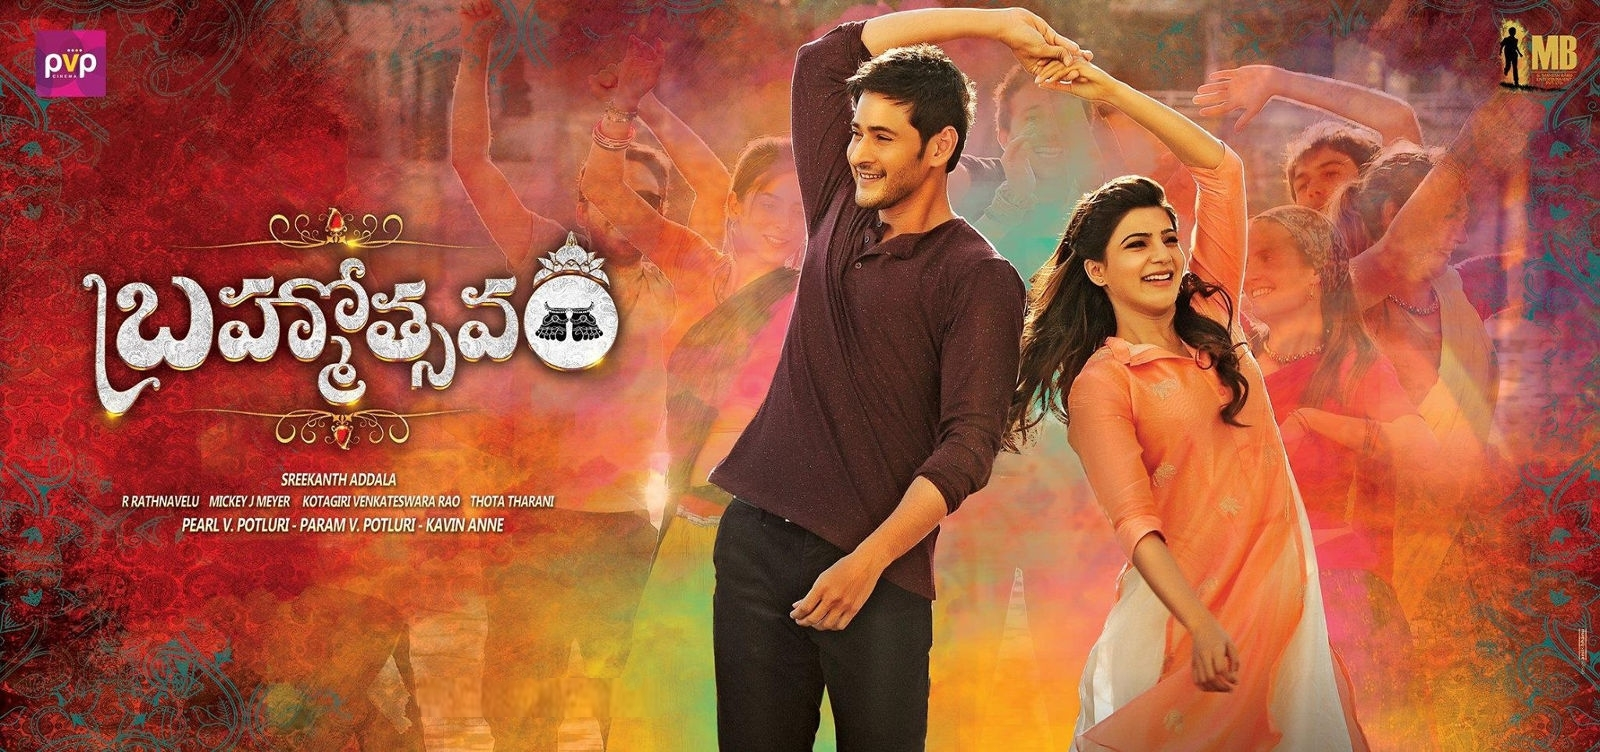 Brahmotsavam (2018) Hindi Dubbed 720p UNCUT WEBRip 1.2GB & 350MB ESubs